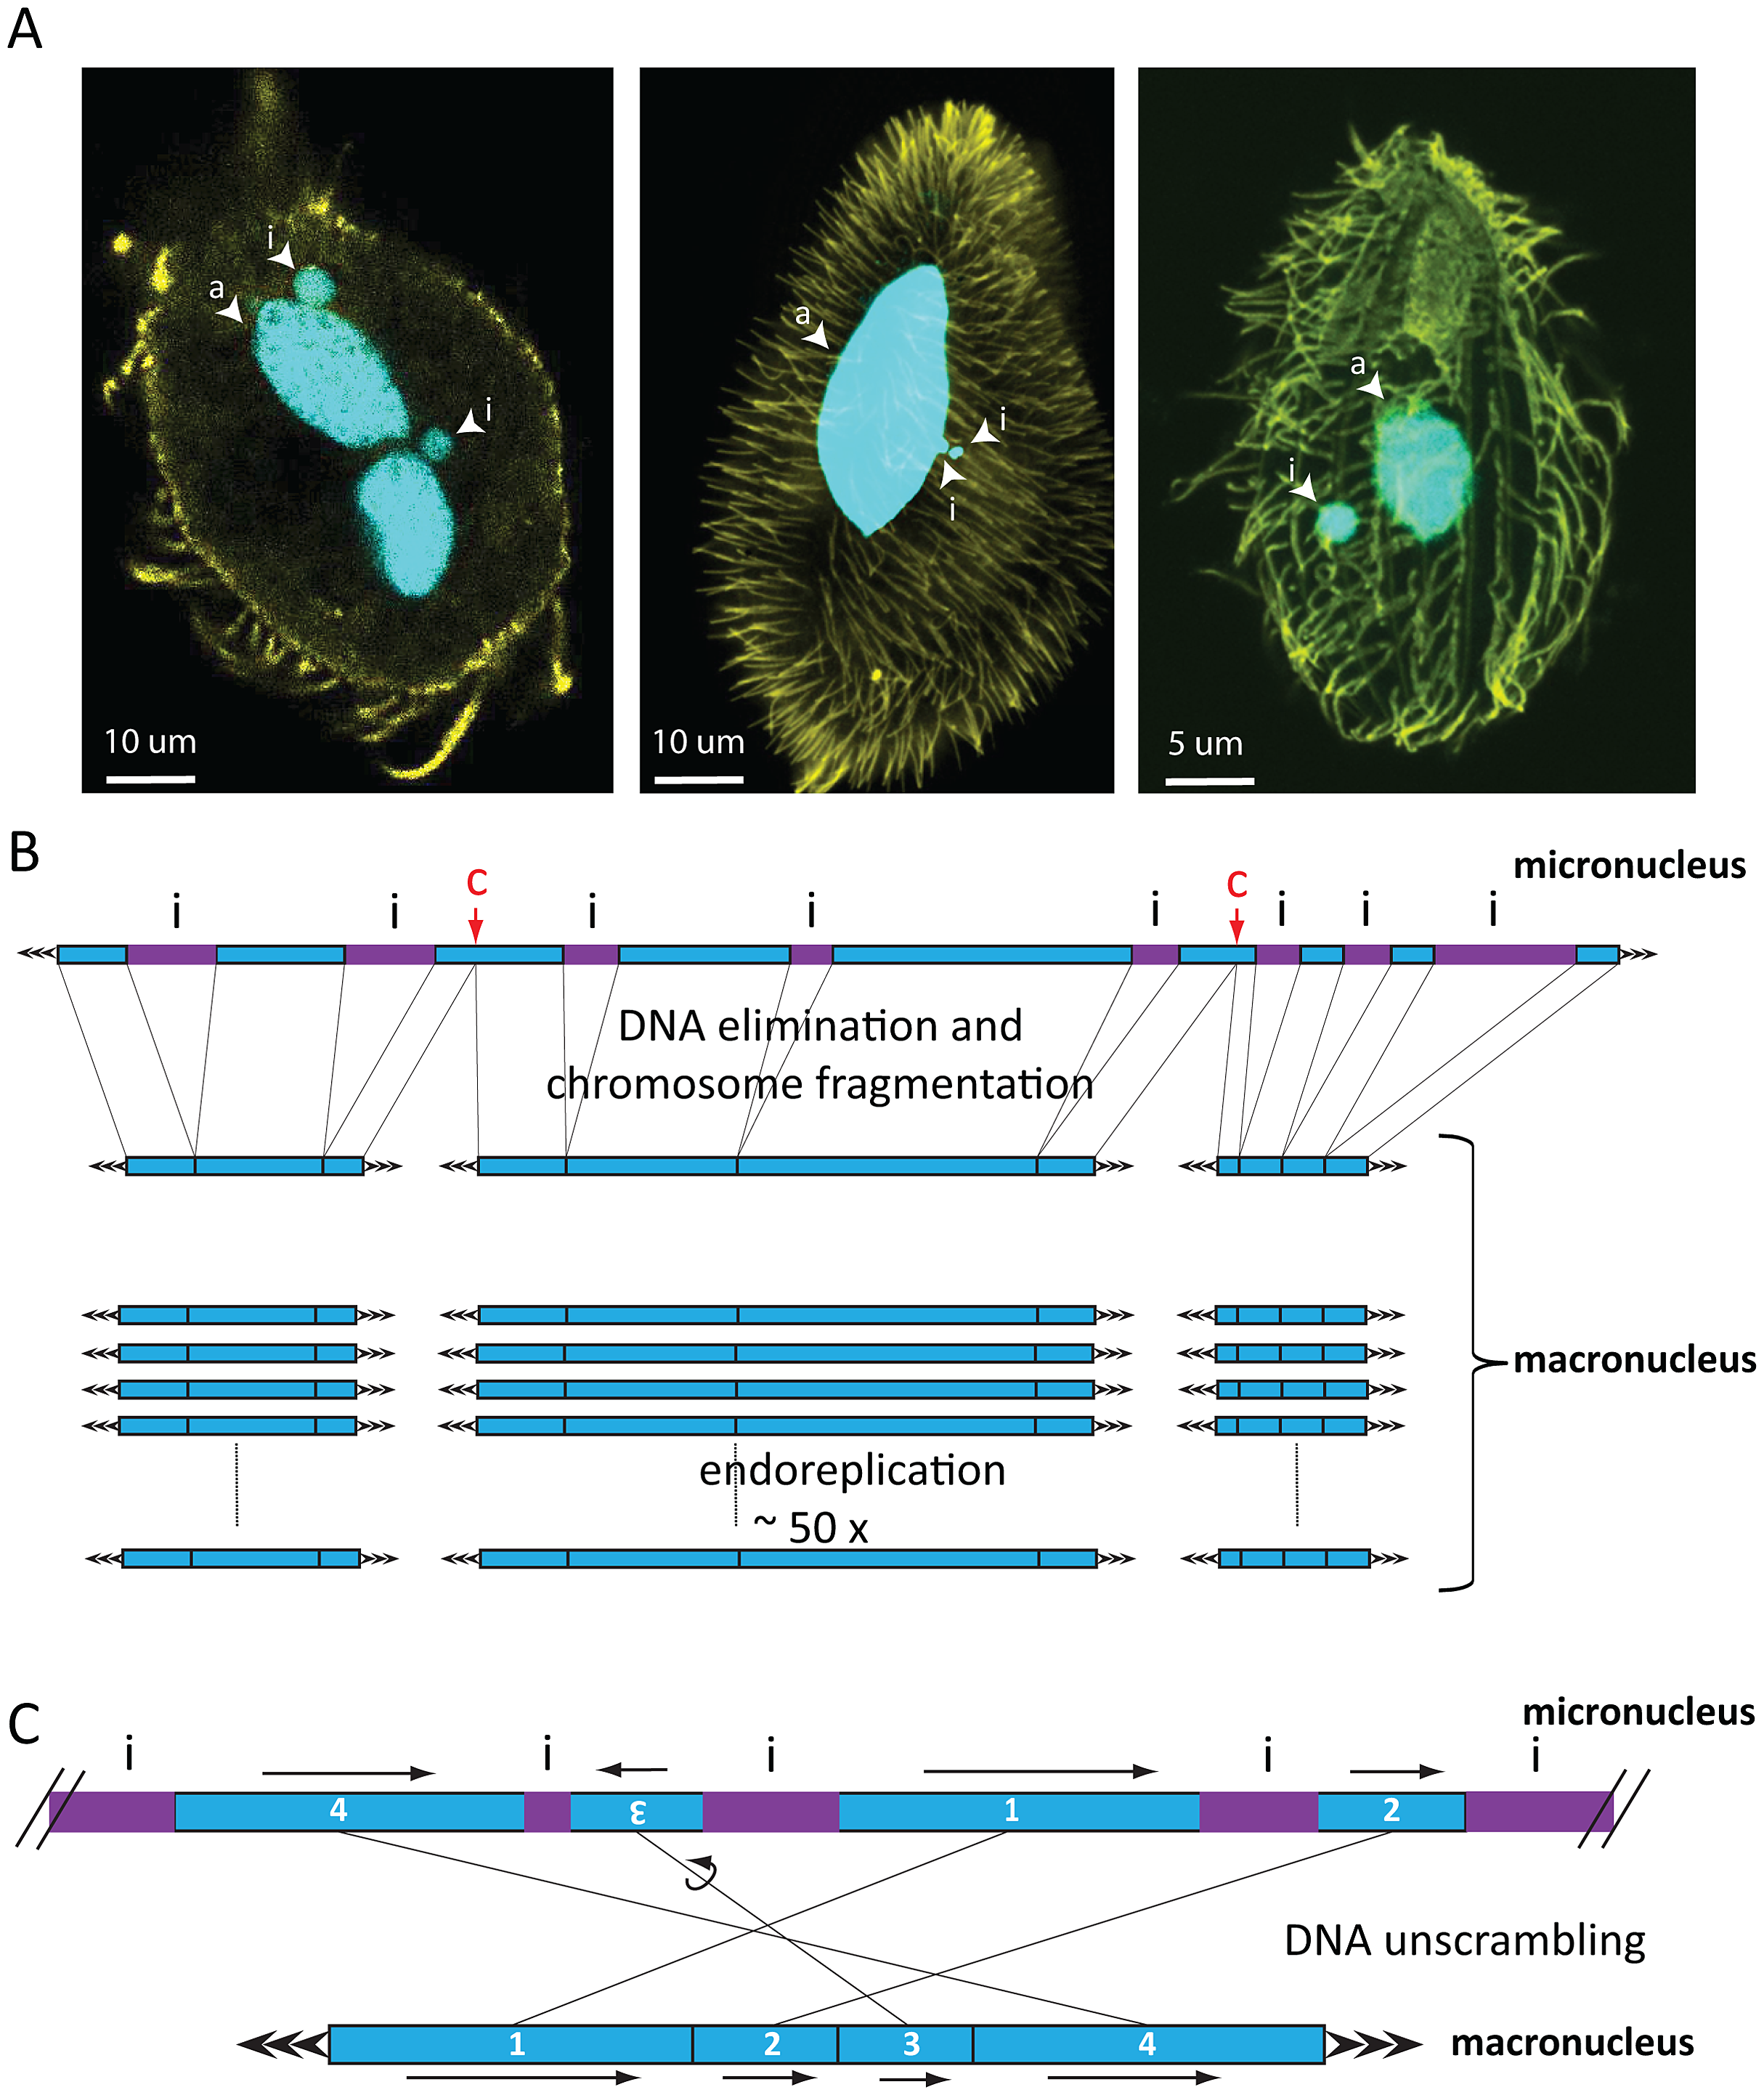 Nuclear dimorphism and genome rearrangements in ciliates.